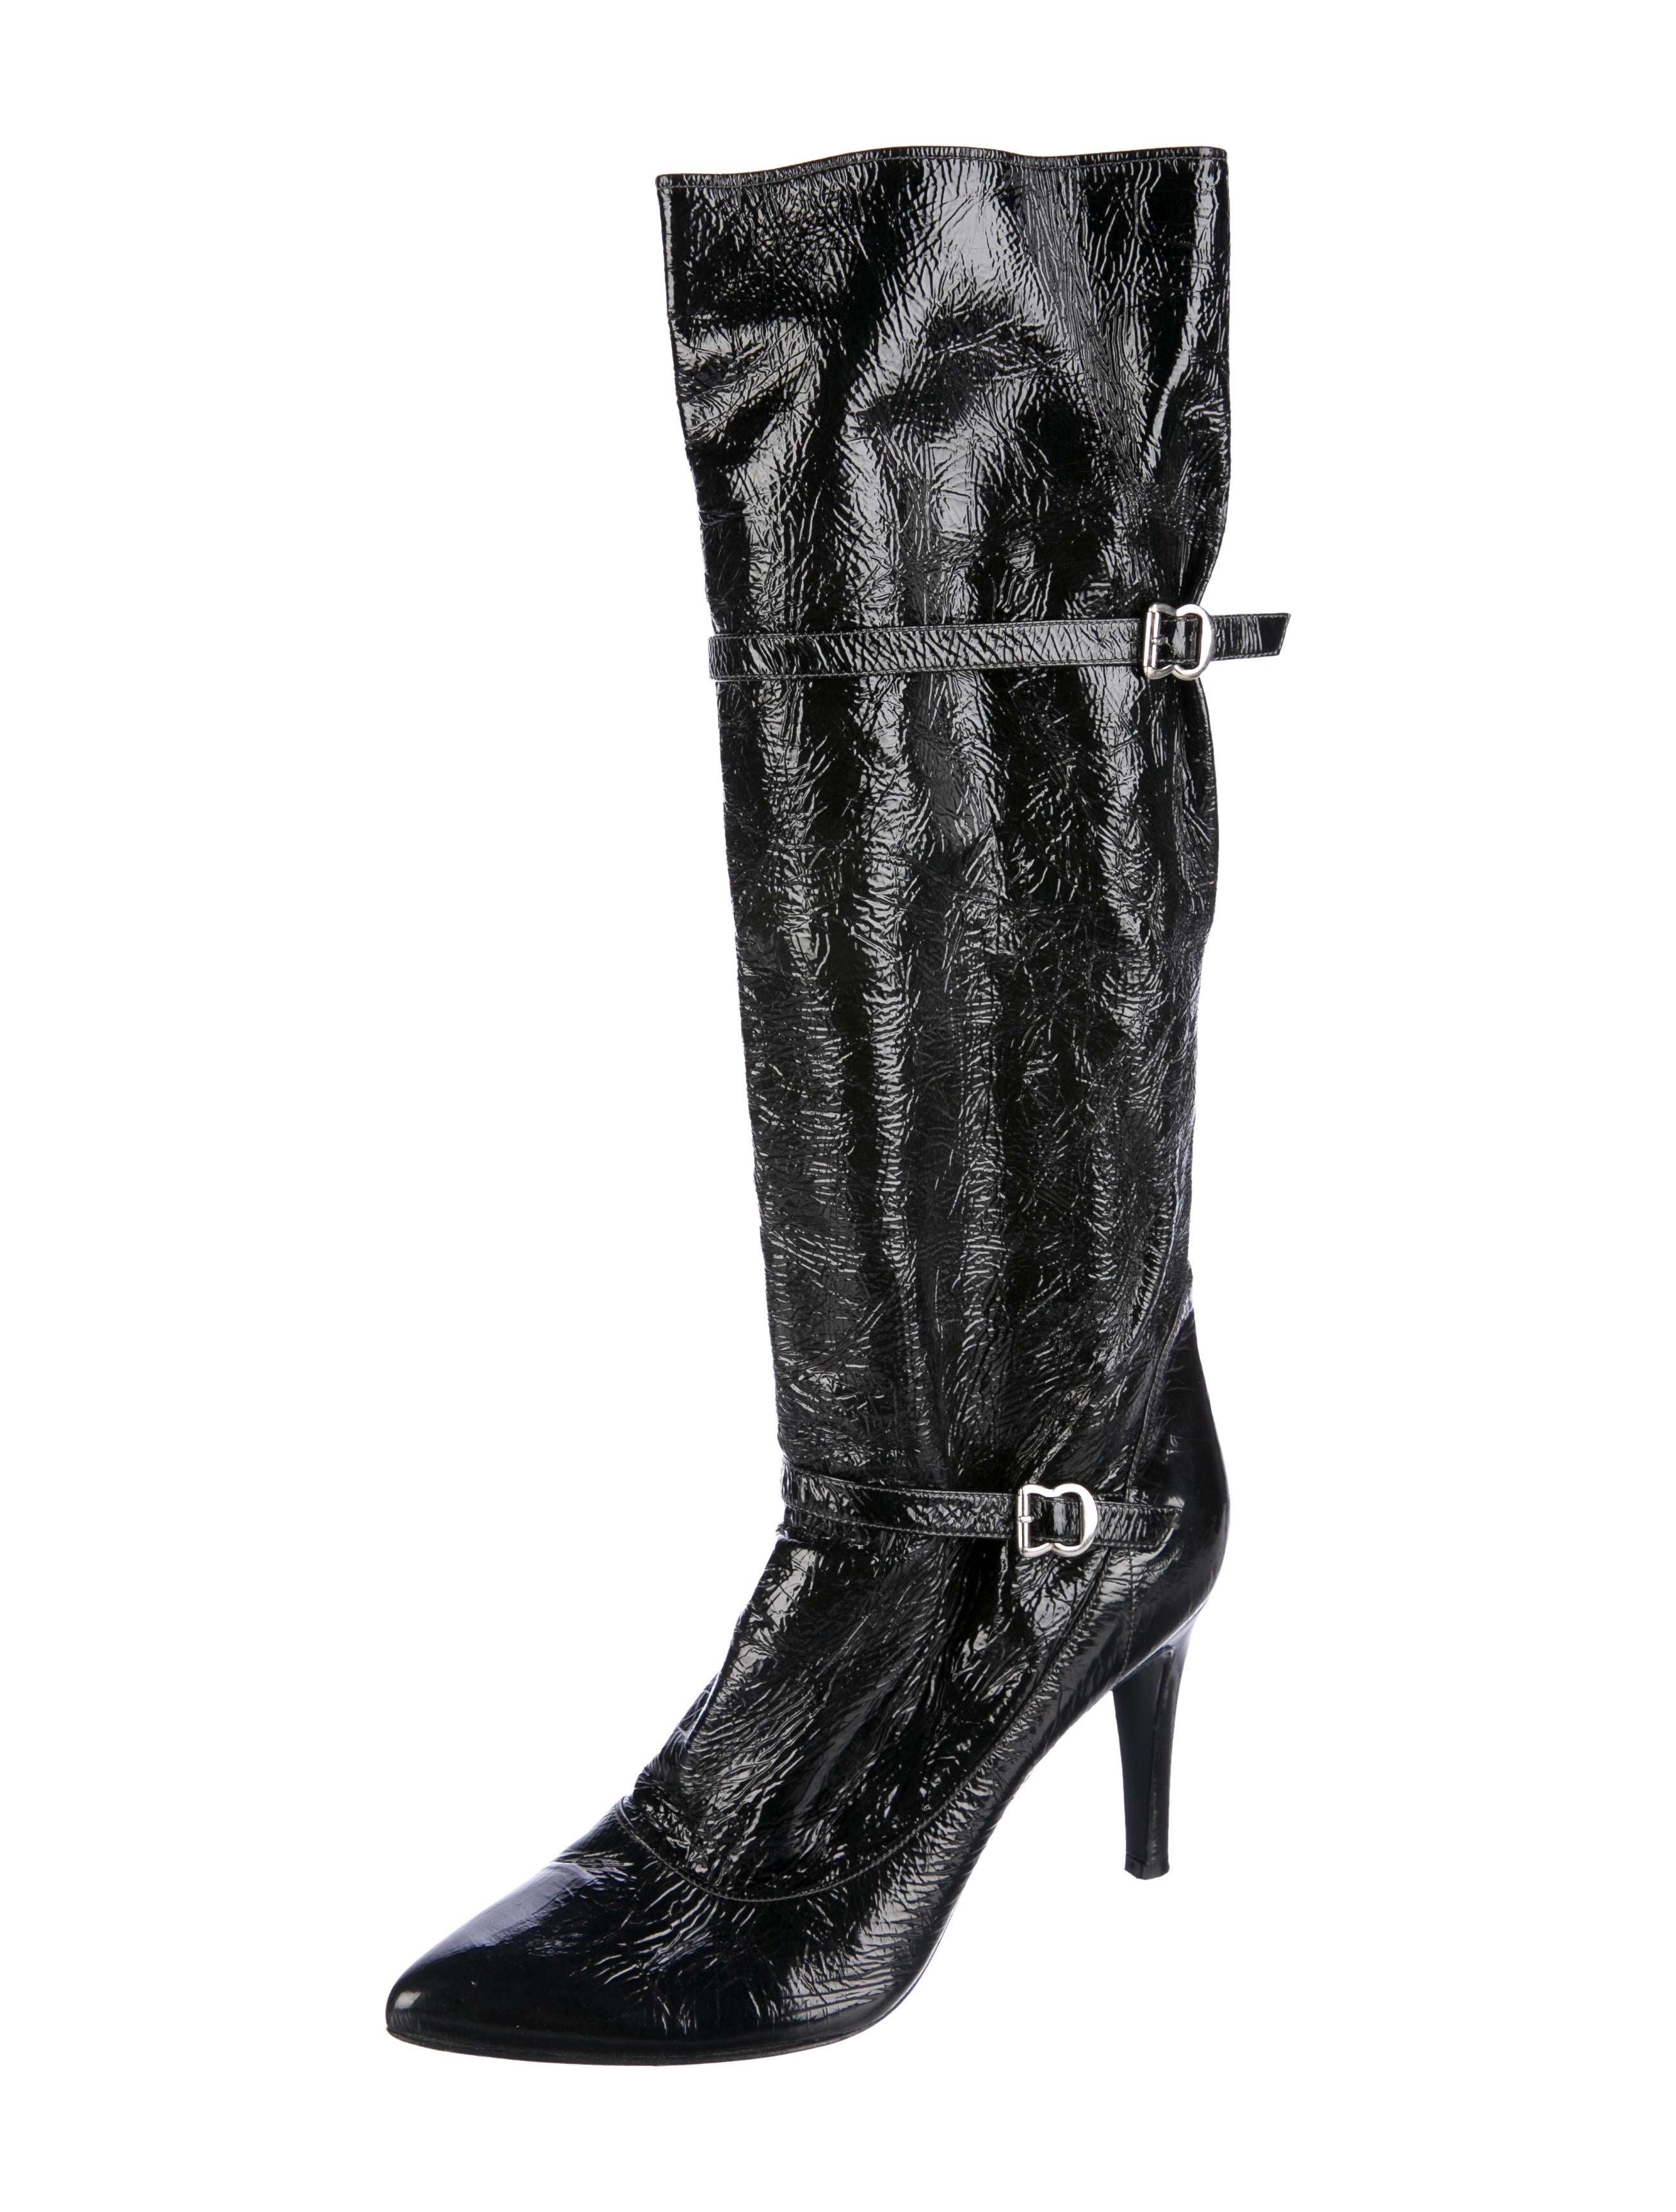 buy cheap low price cheap classic Sigerson Morrison Patent Leather Knee-High Boots sale real u8dKQvXj